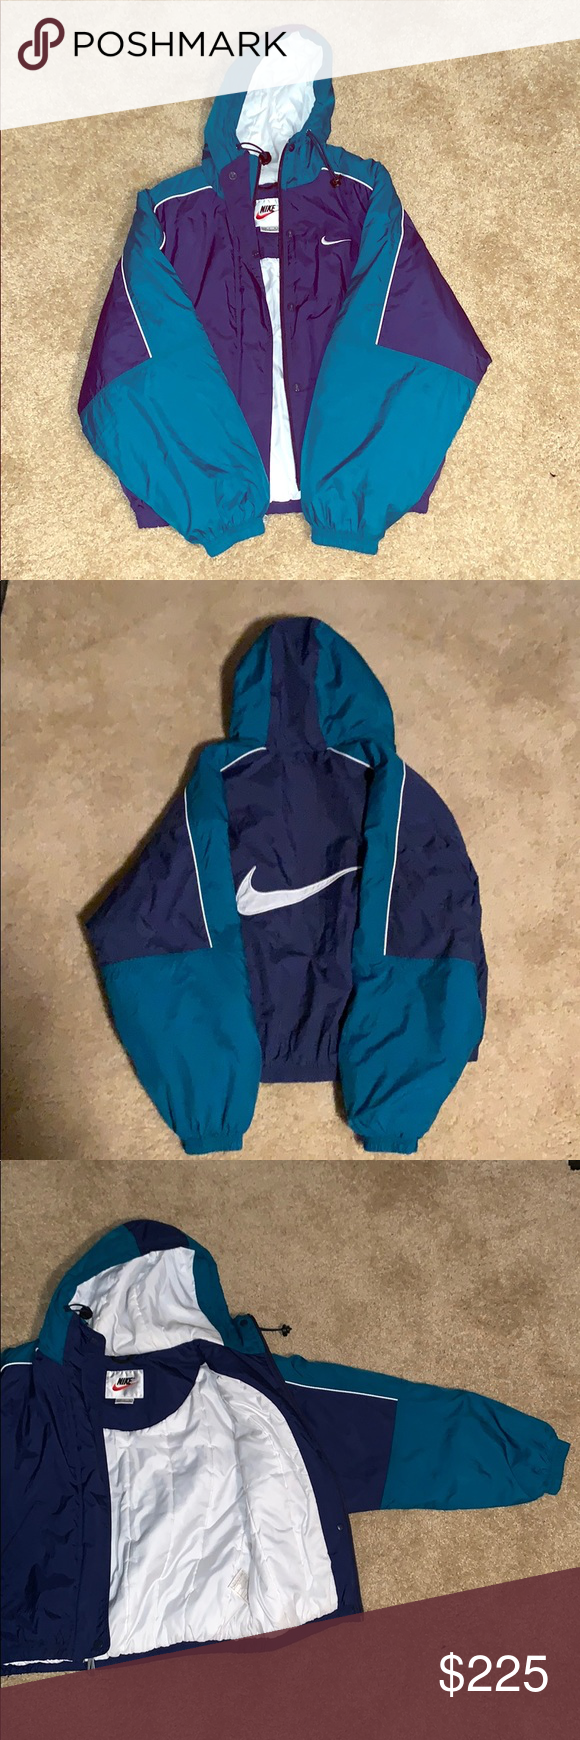 LIMITED EDITION VINTAGE BLUE NIKE COAT S (RARE!) One of a